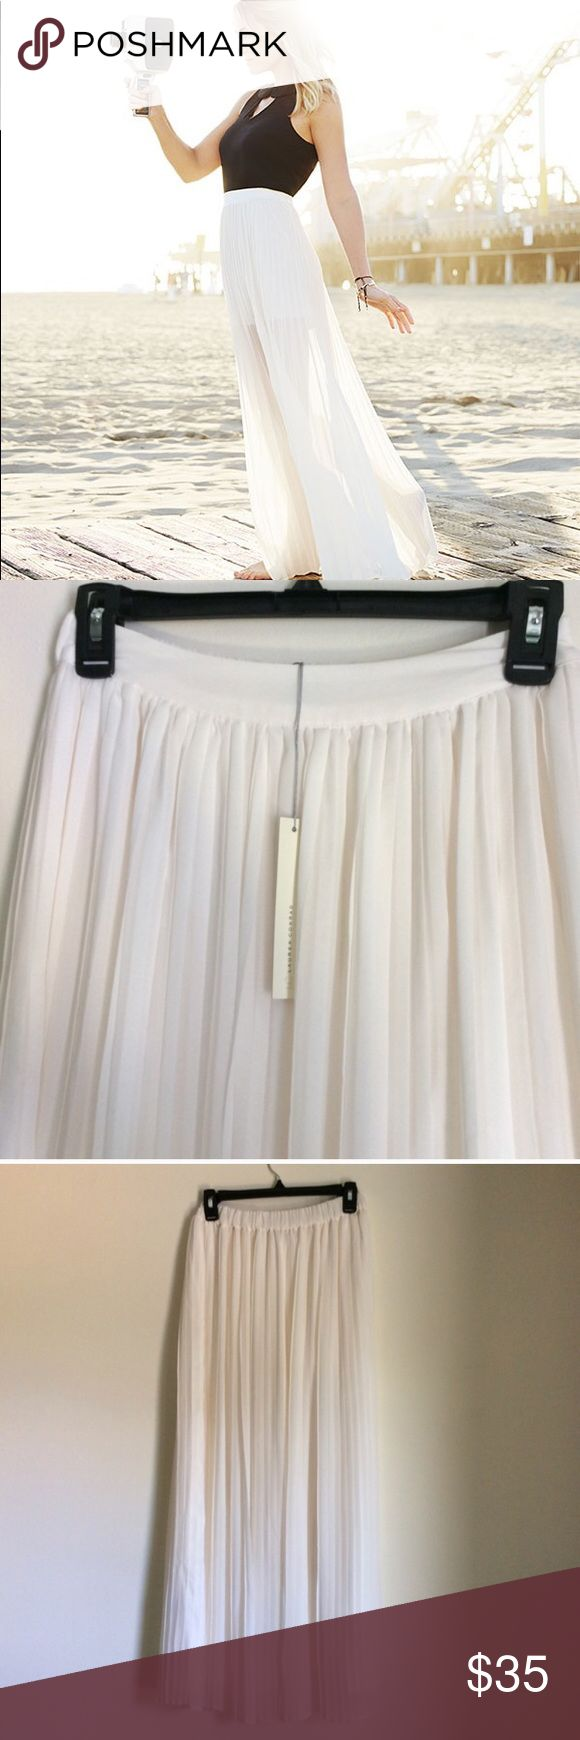 "💐 NWT Lauren Conrad Ivory Pleated Maxi Skirt XS Beautiful off white cream colored skirt, measured about 39"" long. Inner liner is mini skirt length so the skirt is sheer from the knees down (see first picture). Gorgeous accordion pleats with back zipper. Bundle to save 💕 LC Lauren Conrad Skirts Maxi"